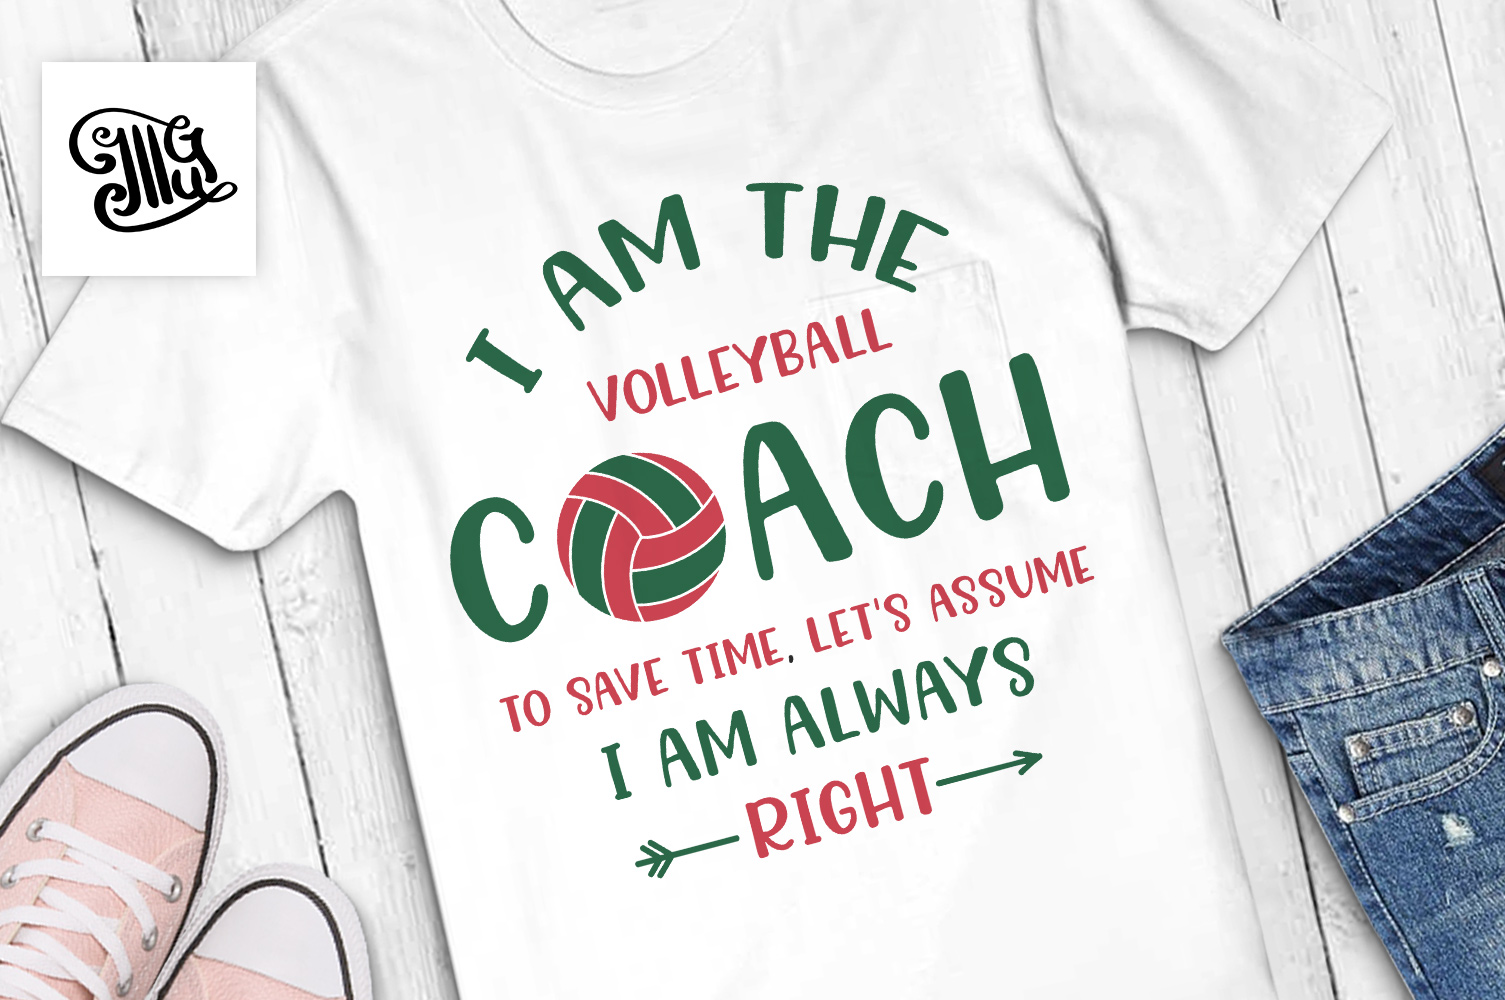 I am the Volleyball coach, to save time let's assume example image 1